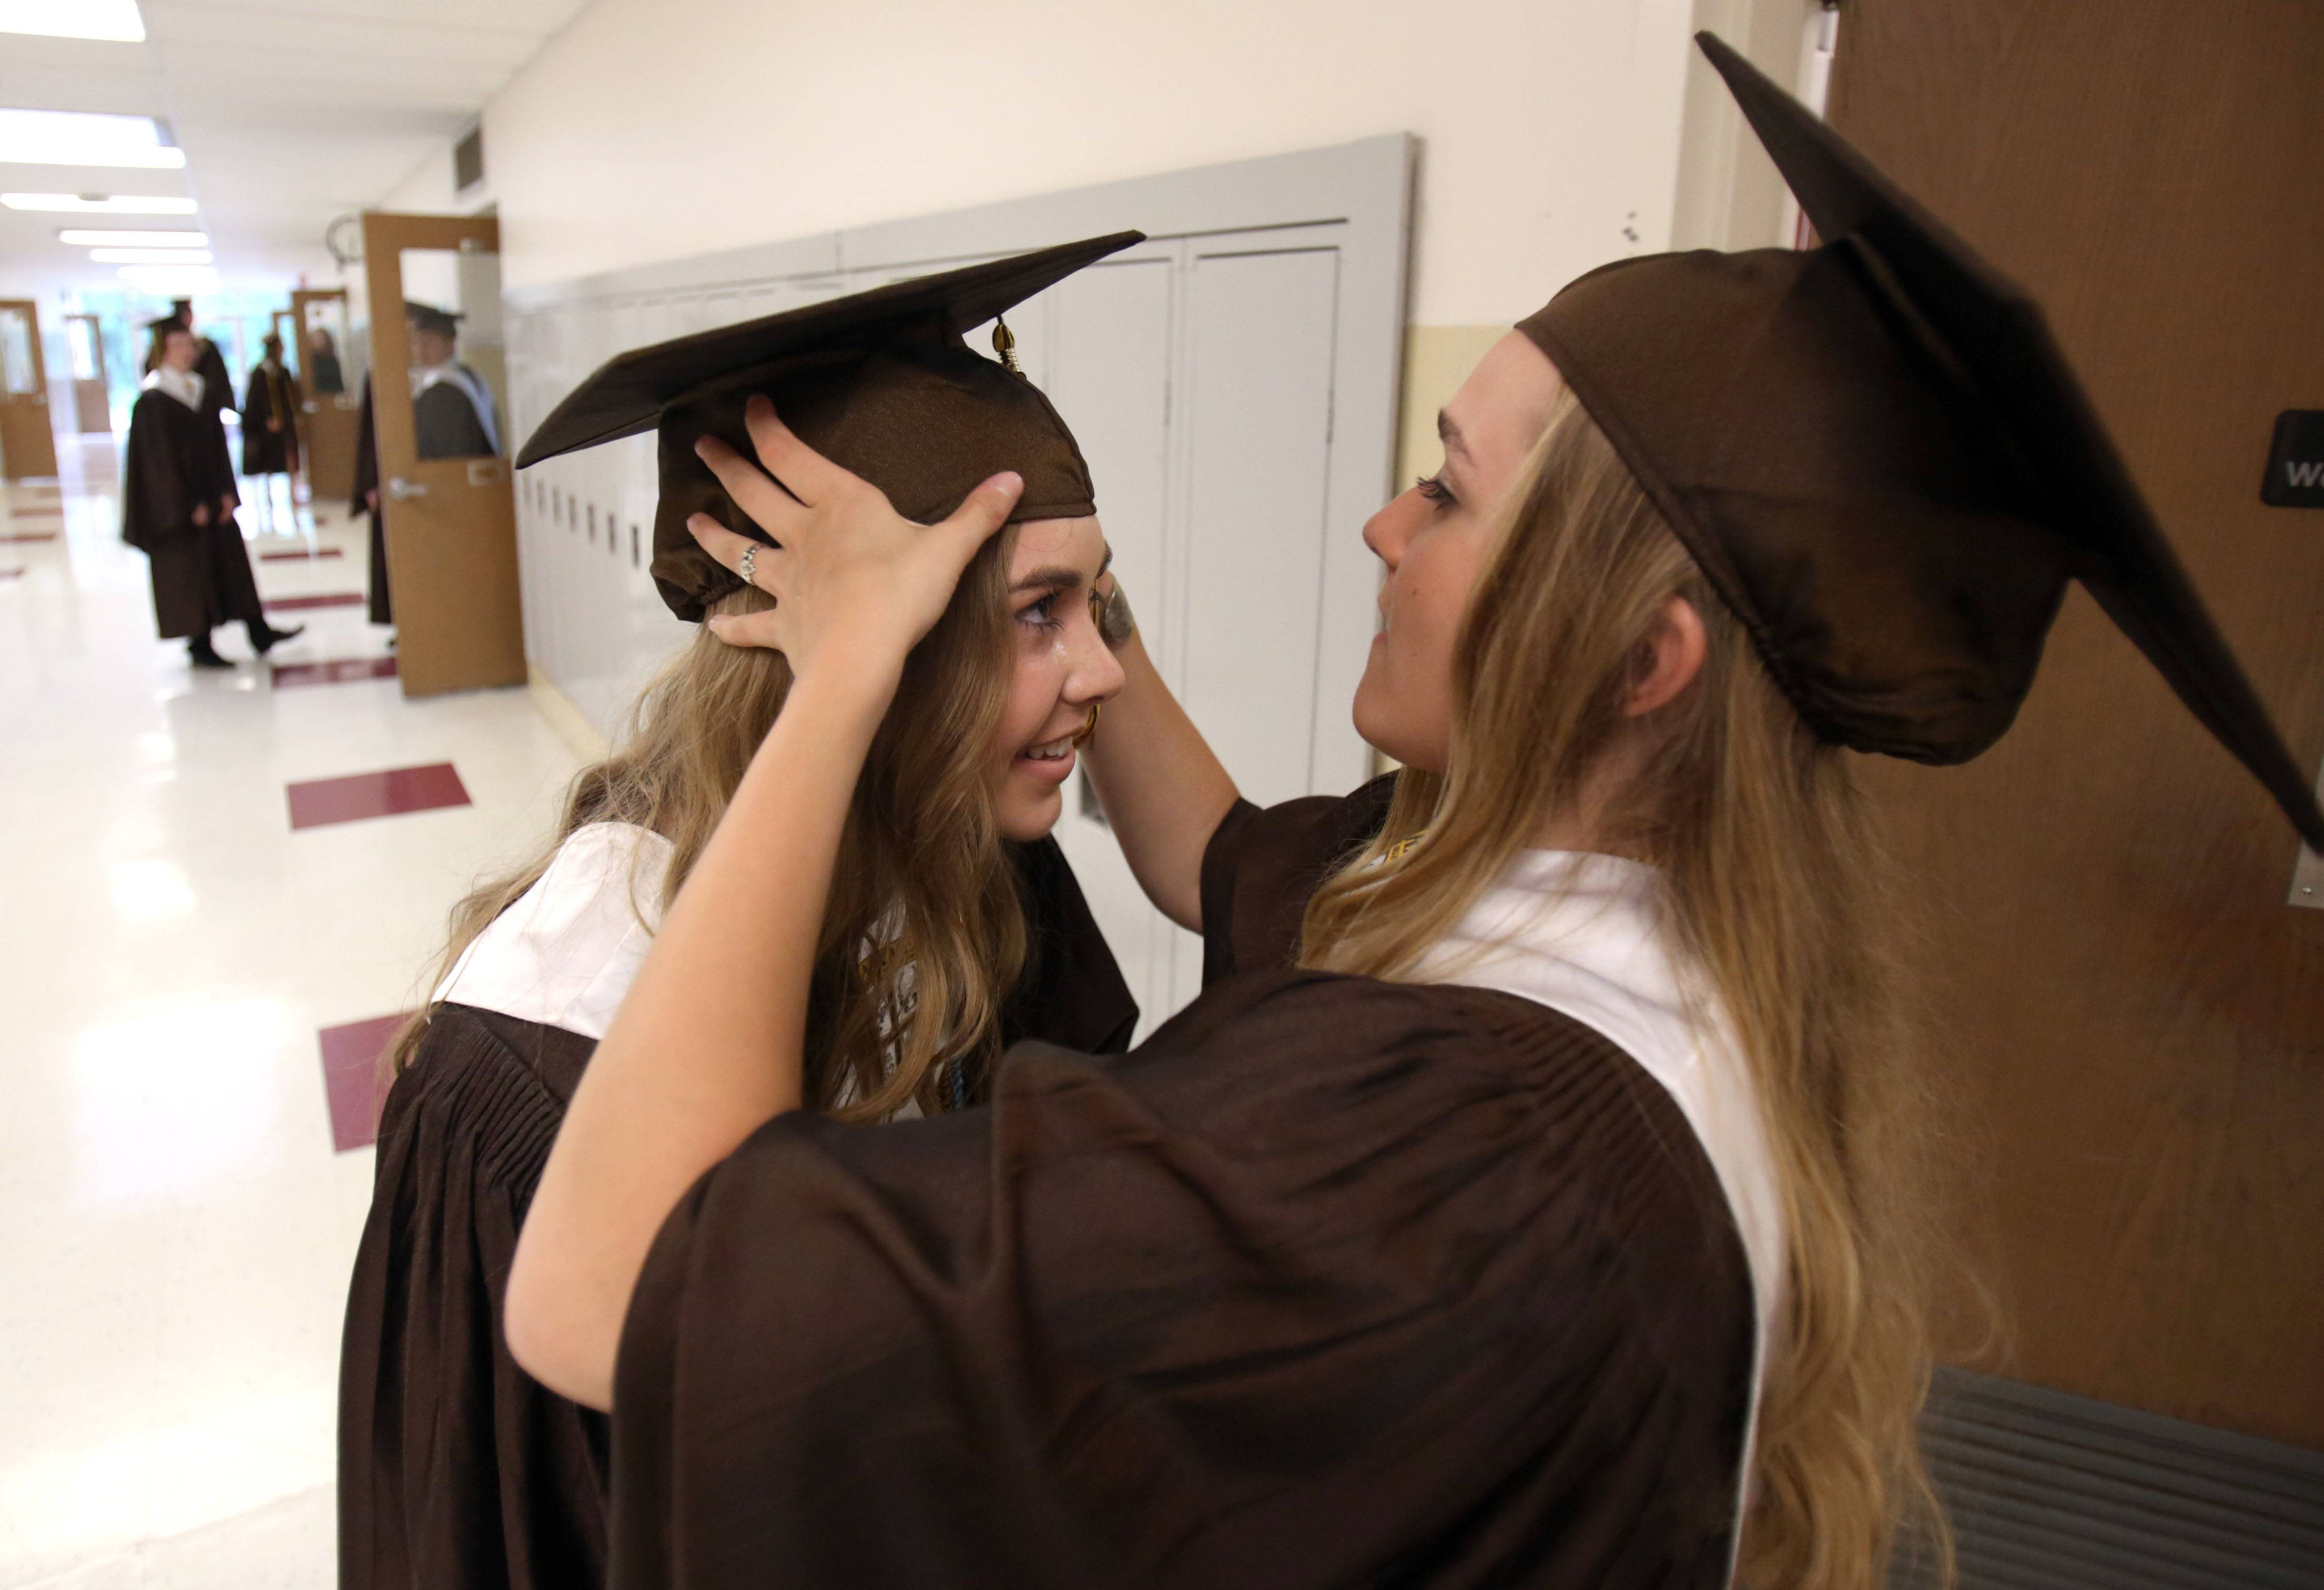 Eva Savovich, right, helps Meeghan Paslaski with her cap prior to Carmel Catholic High School's graduation ceremony Friday in Mundelein.